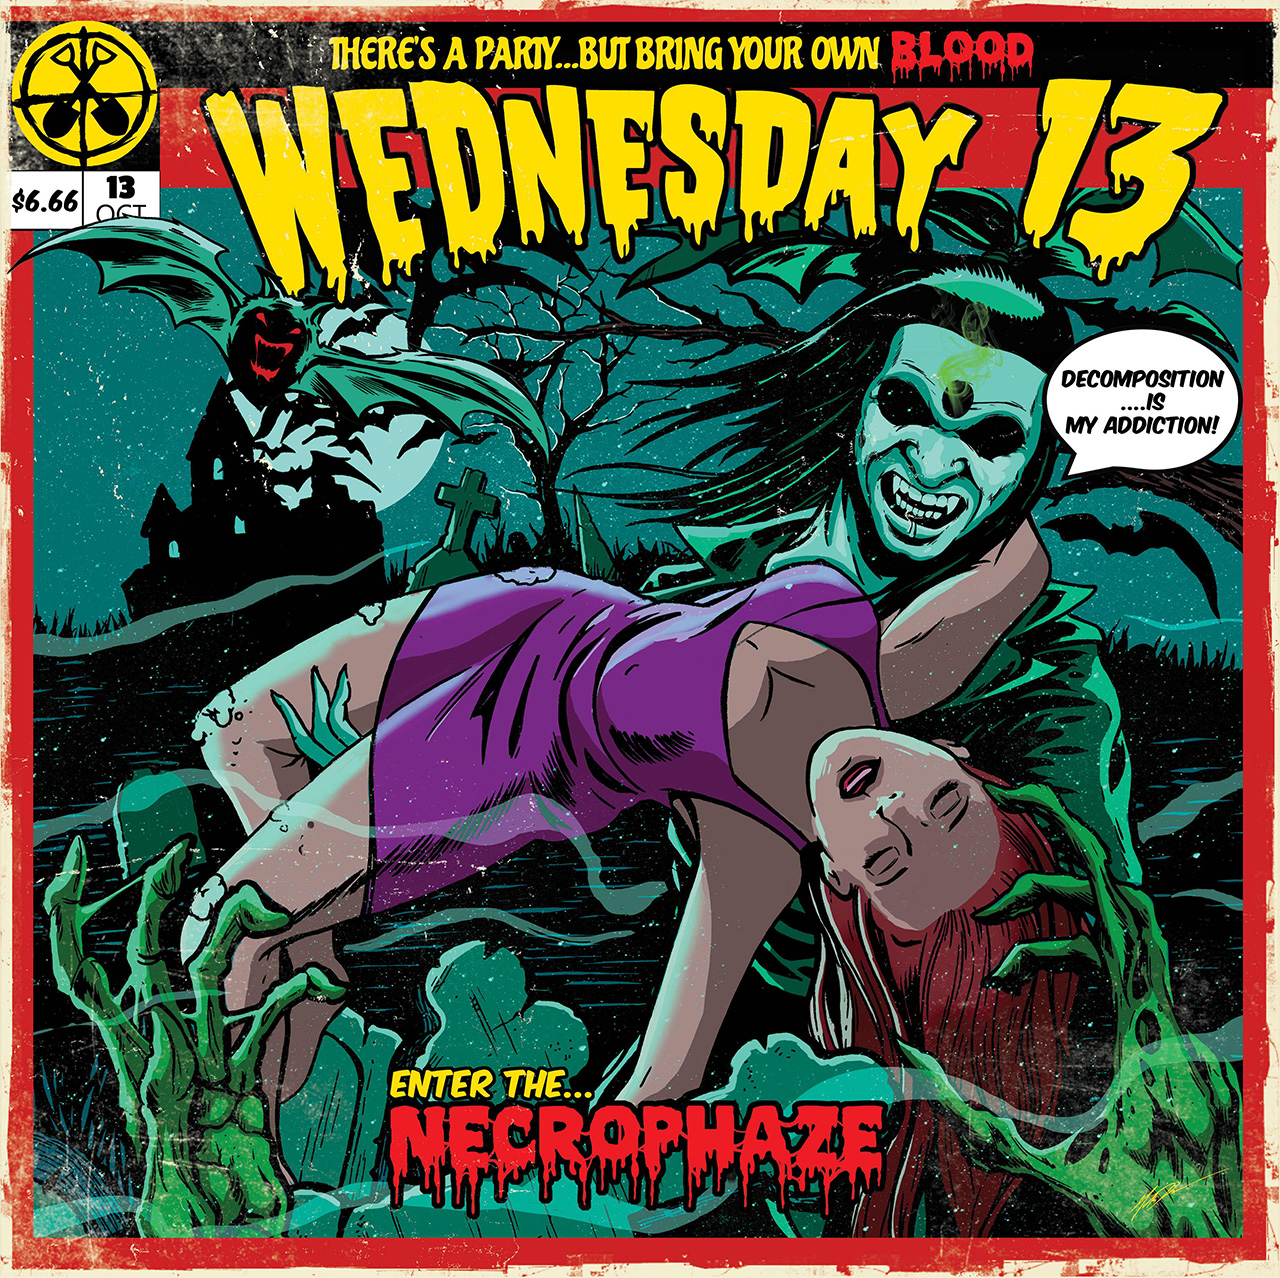 Wednesday 13 hook up with Alice Cooper for Necrophaze - watch ghoulish video | Louder